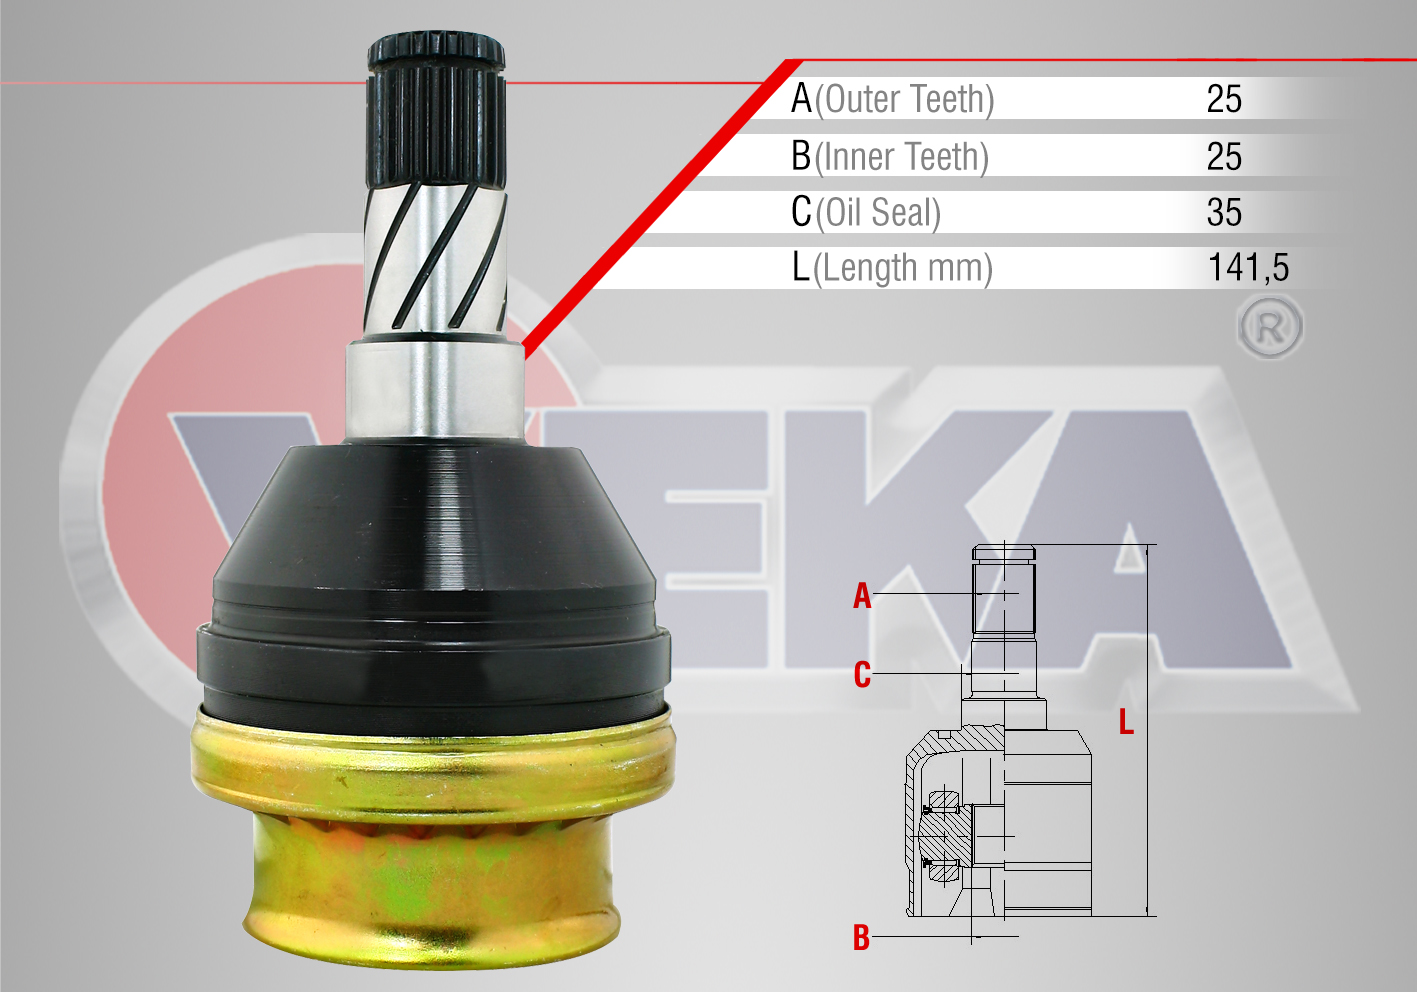 AKS KAFASI SOL ON IC OPEL ASTRA H 1.3 CDTI 25X25X35 UZUNLUK 141,5 MM 2004-2010  - Oem No: 1603269